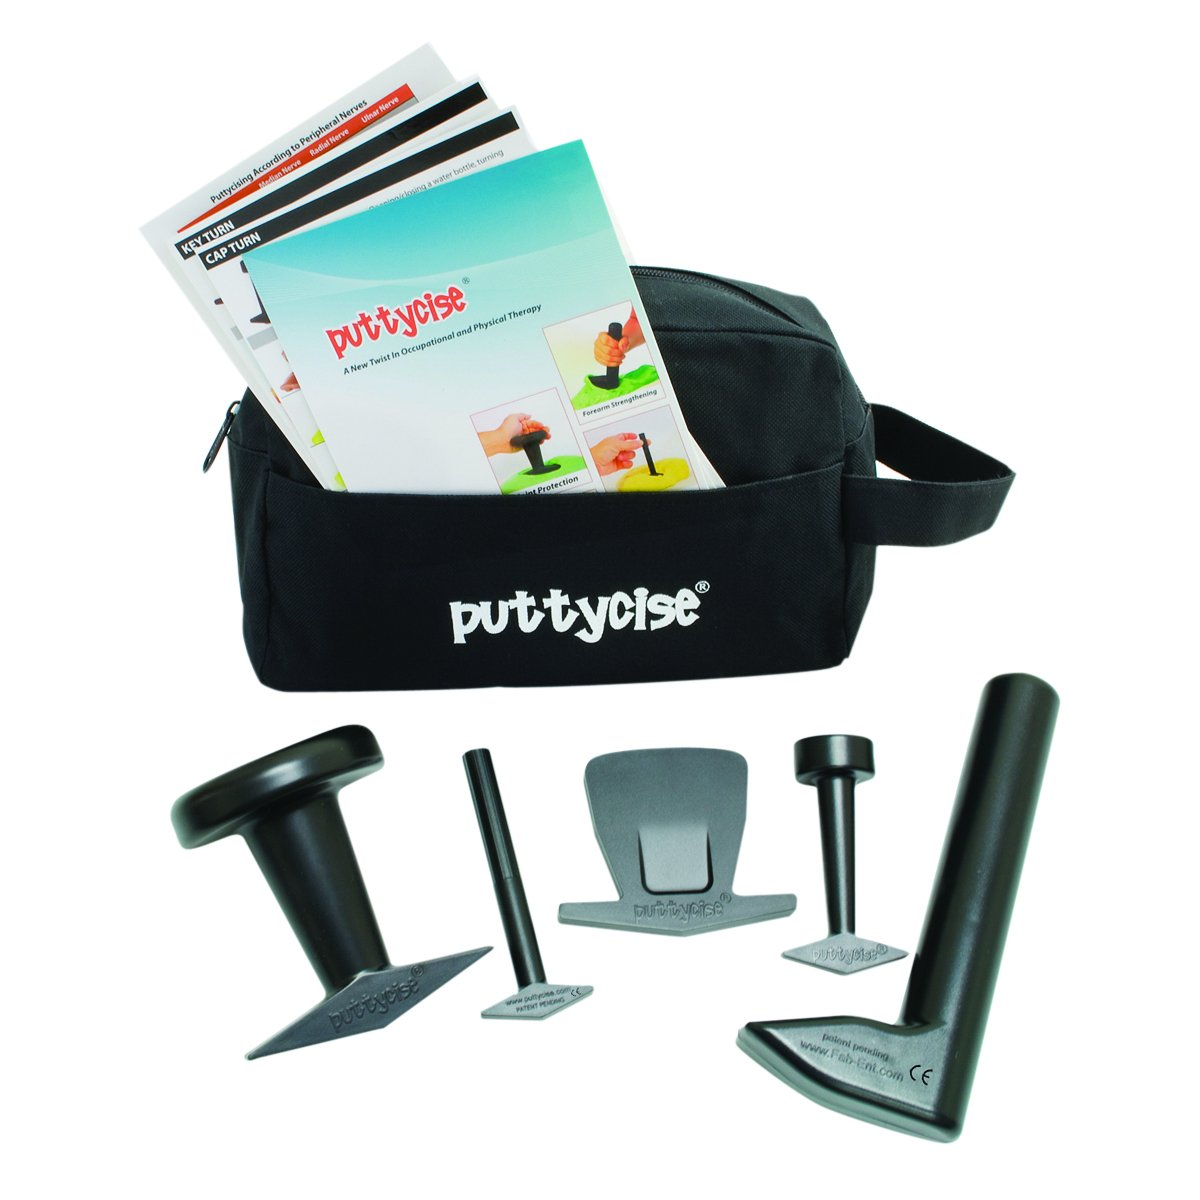 PuttyCise Theraputty Tools 562945 5 Piece Set by DSS